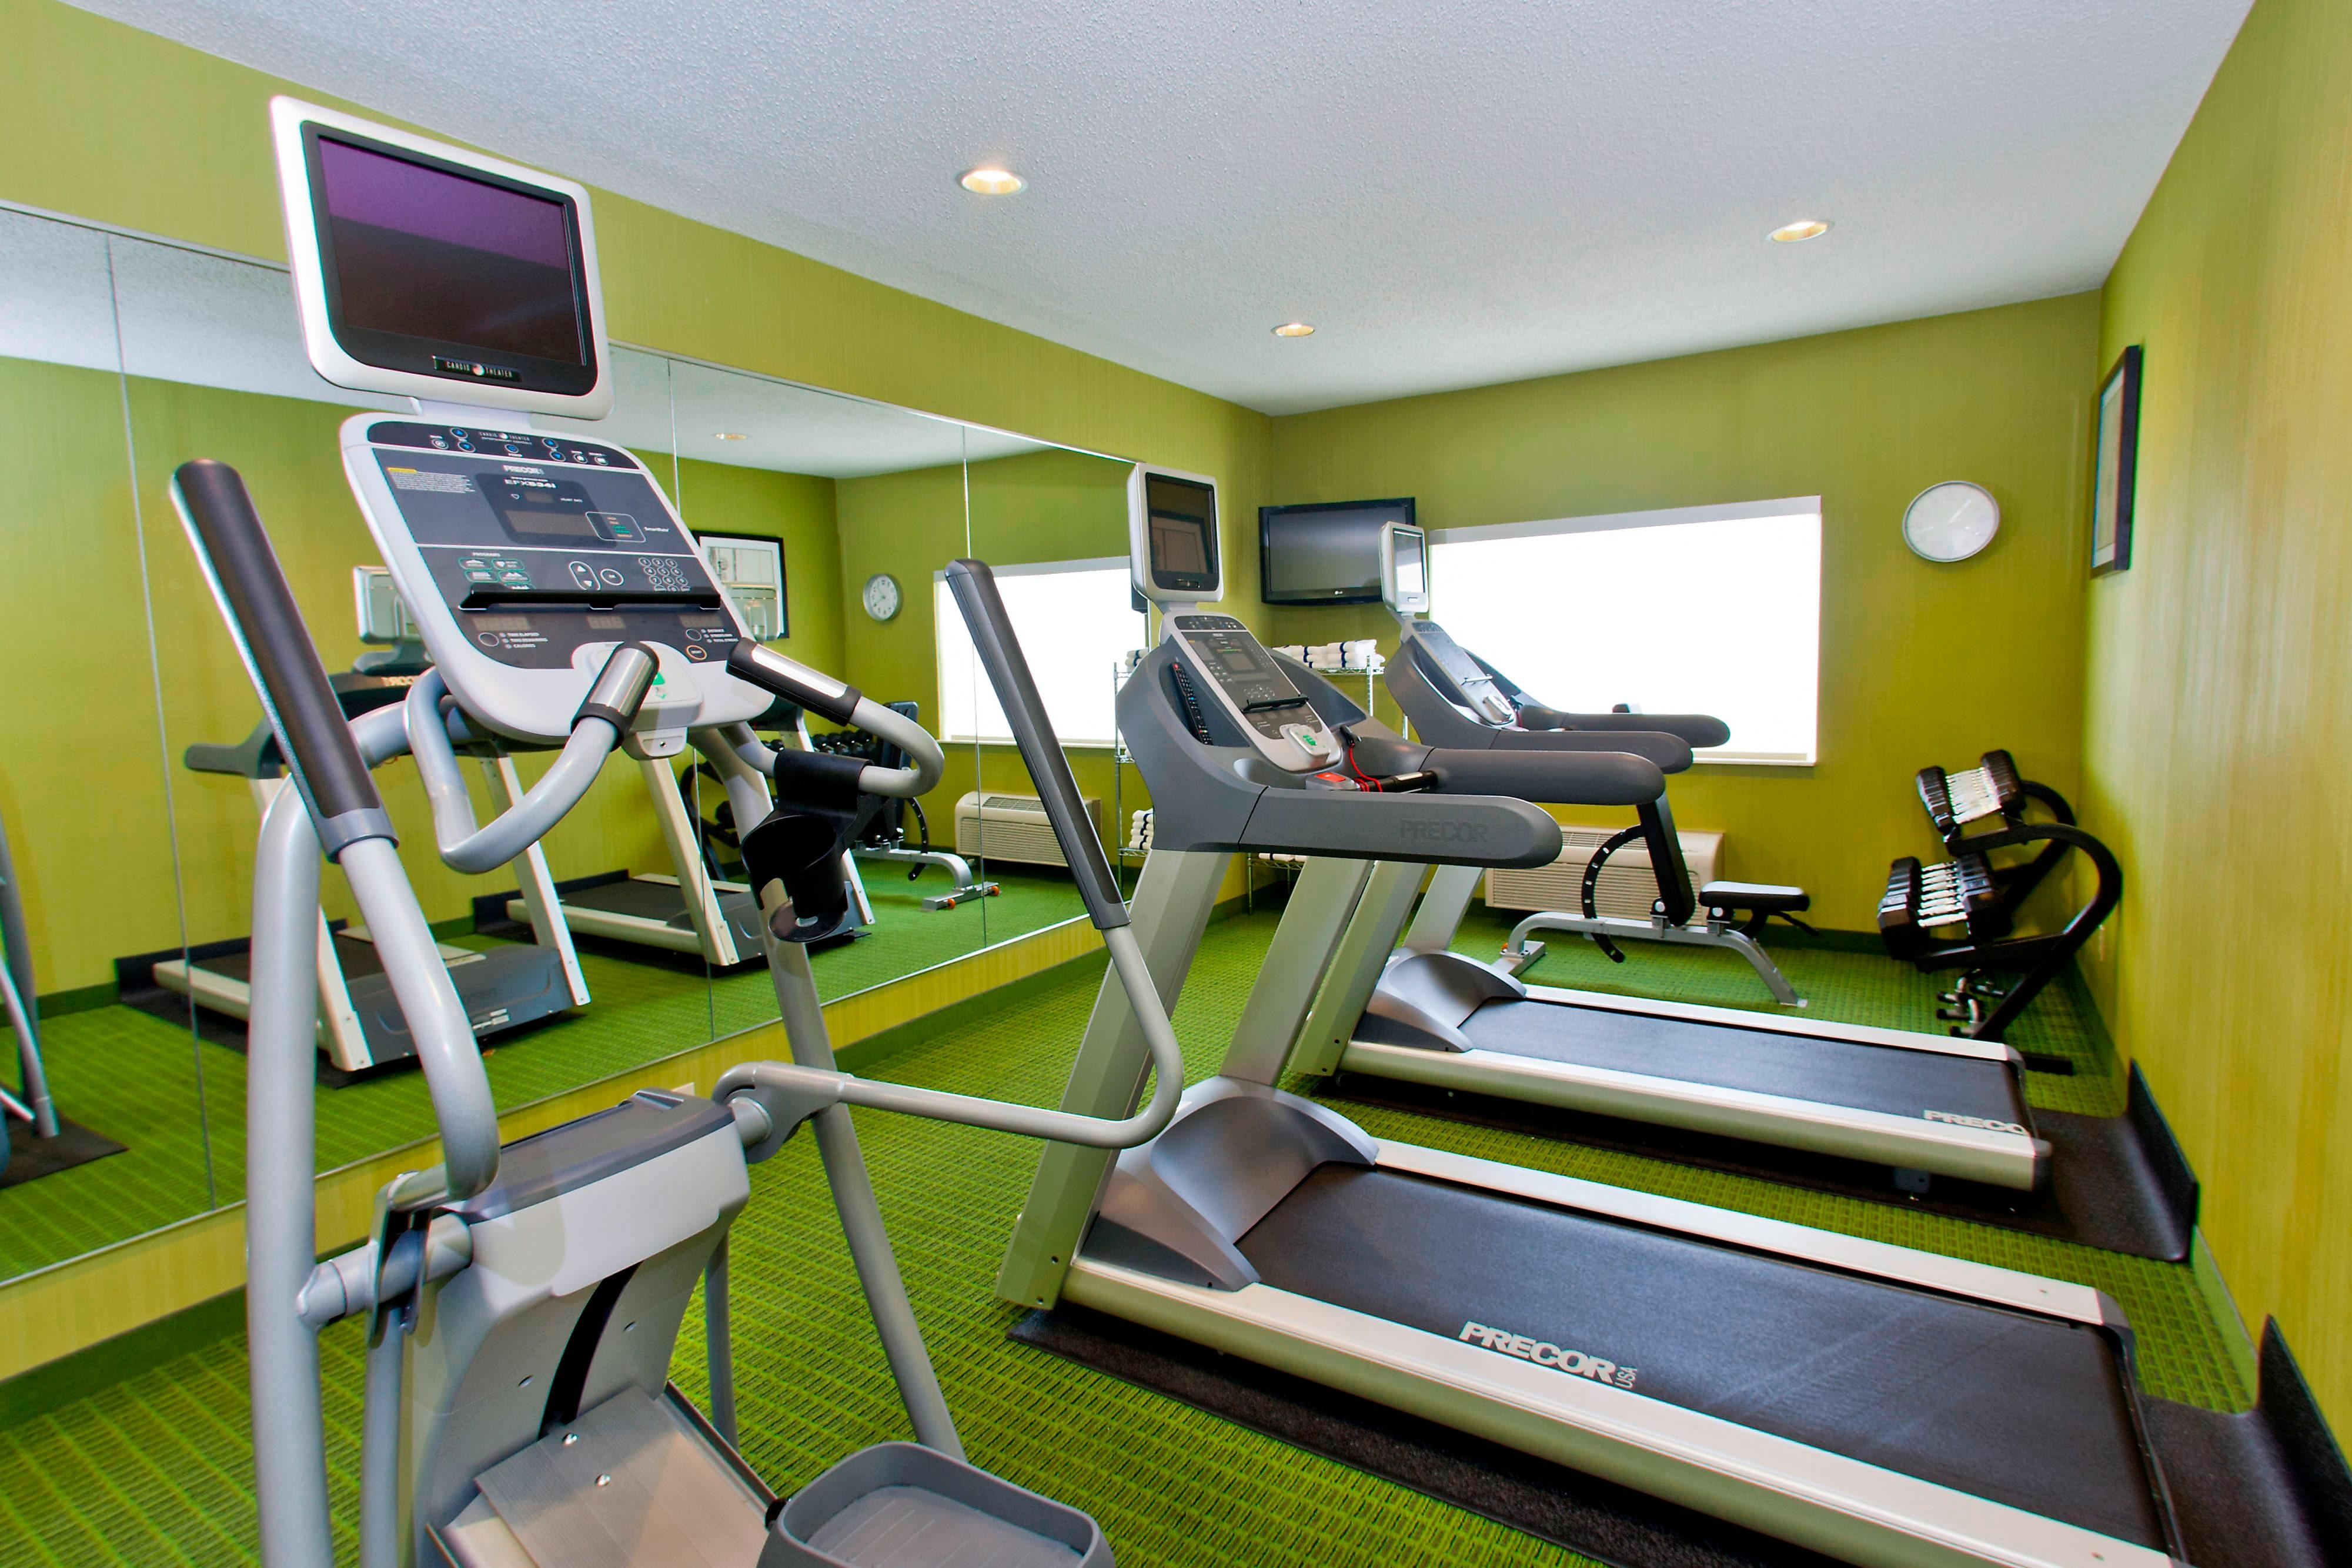 champaign hotel with gym